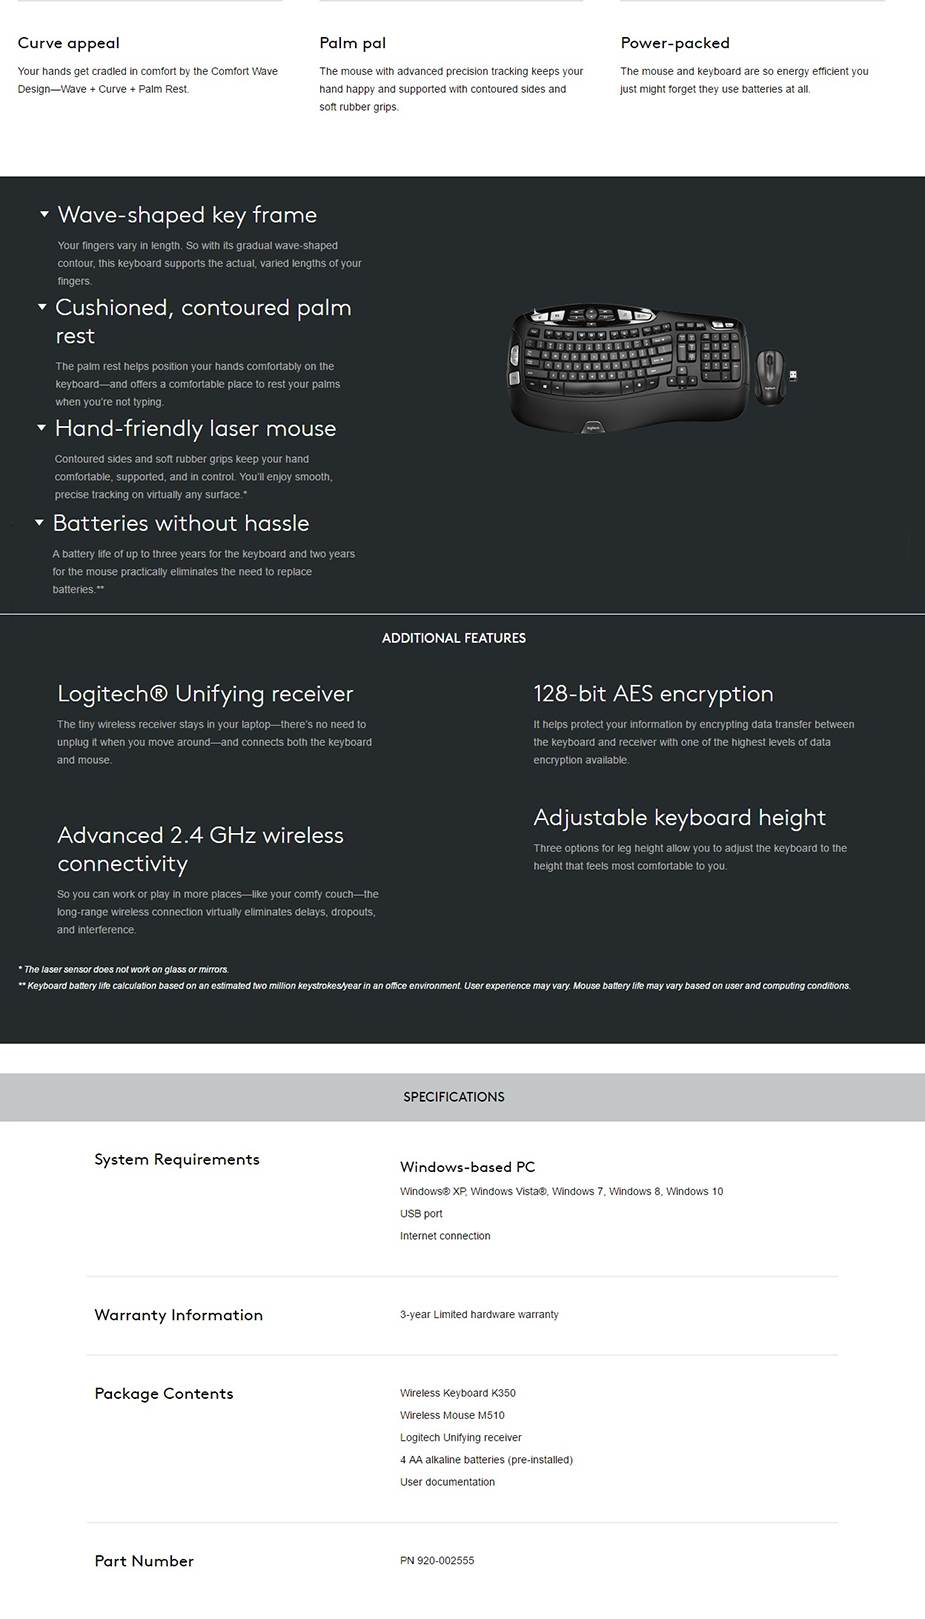 A large marketing image providing additional information about the product Logitech MK550 Wireless Wave Keyboard & Mouse Combo - Additional alt info not provided